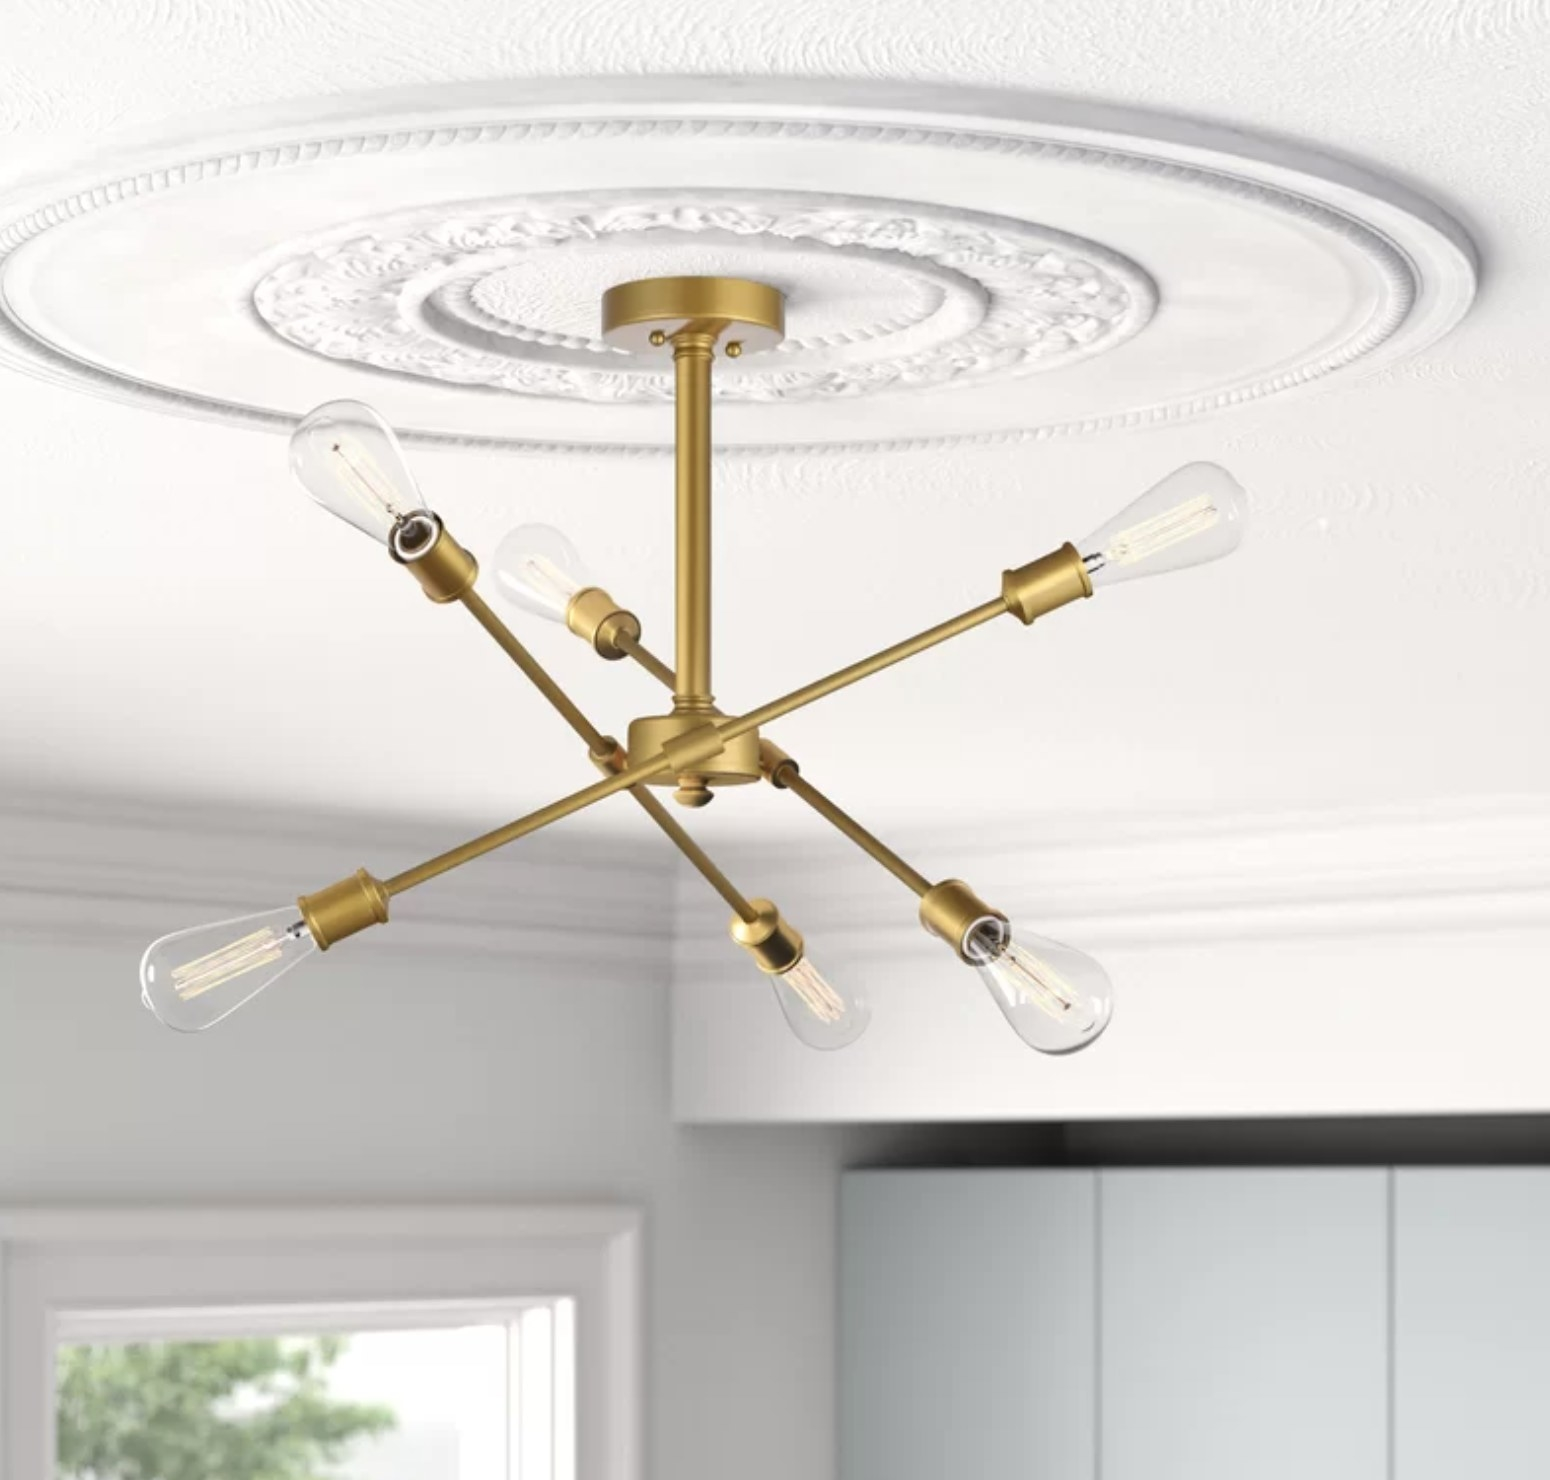 The ceiling light with gold chrome